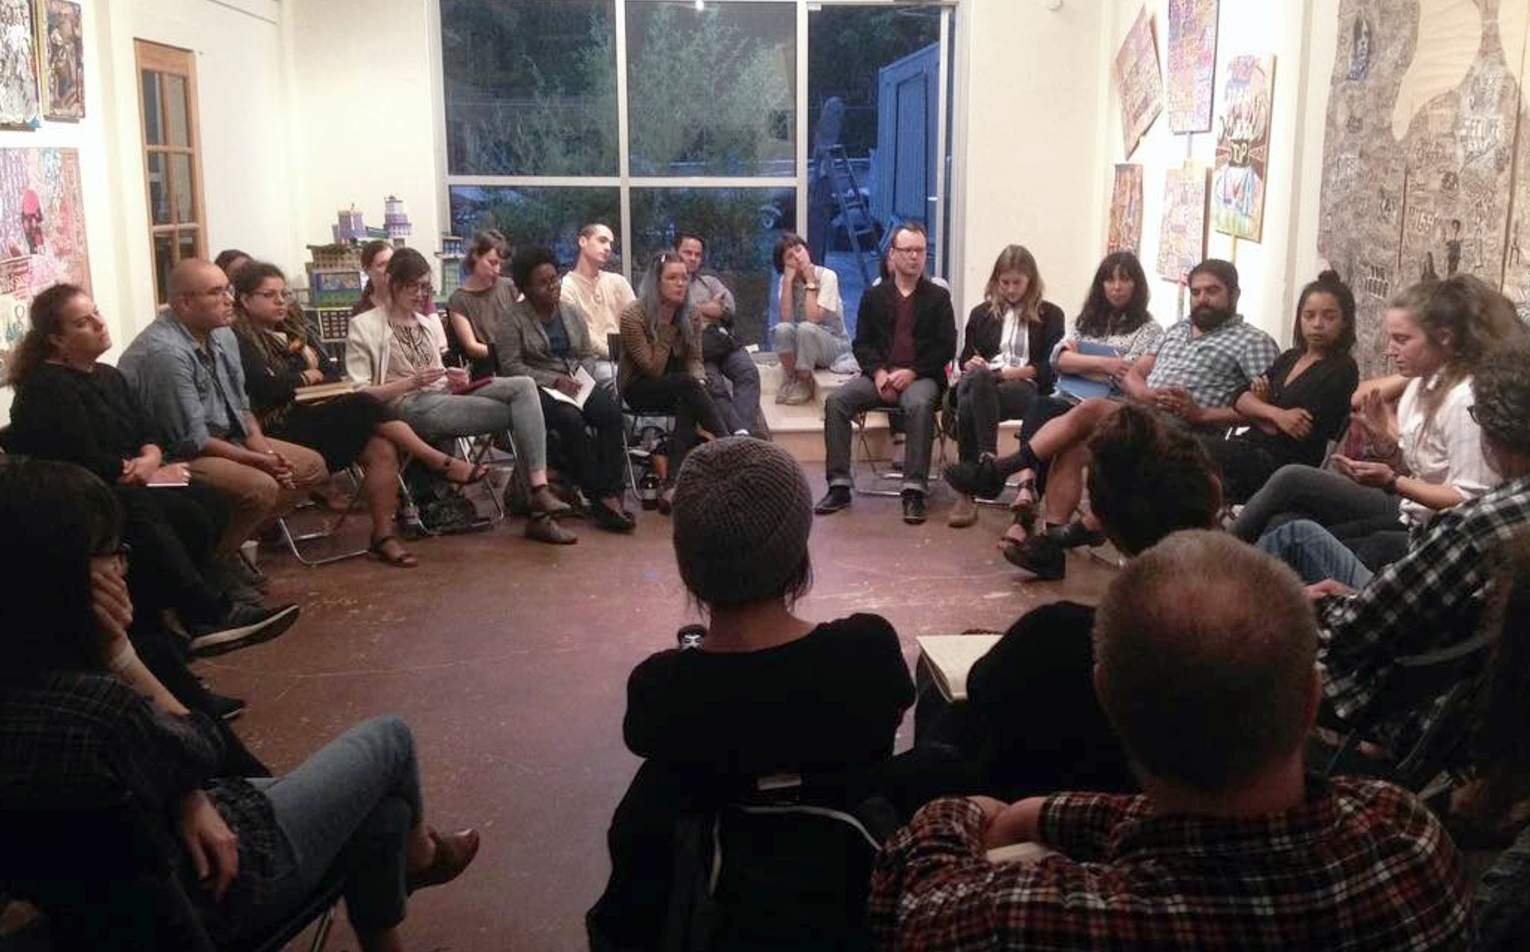 Art and Activism Panel Discussion hosted by Prequel during its 2016 session, the conversation was open to the public.